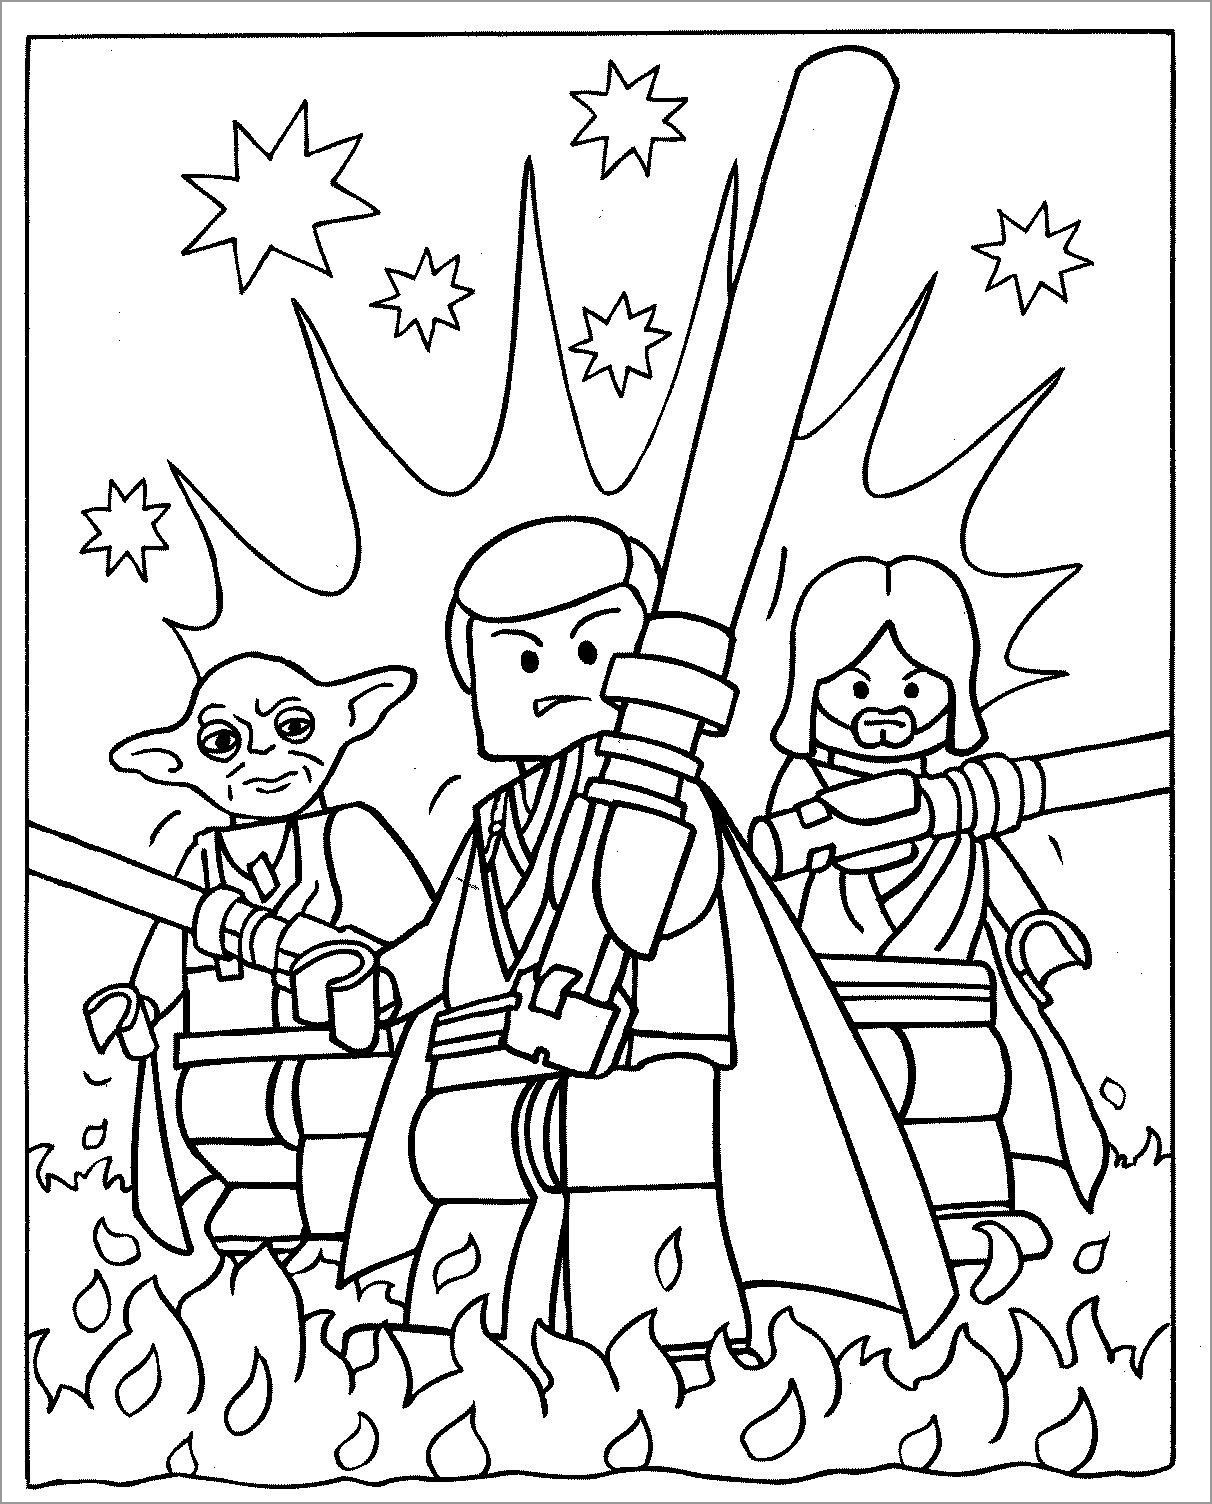 Free Printable Star Wars Lego Coloring Pages